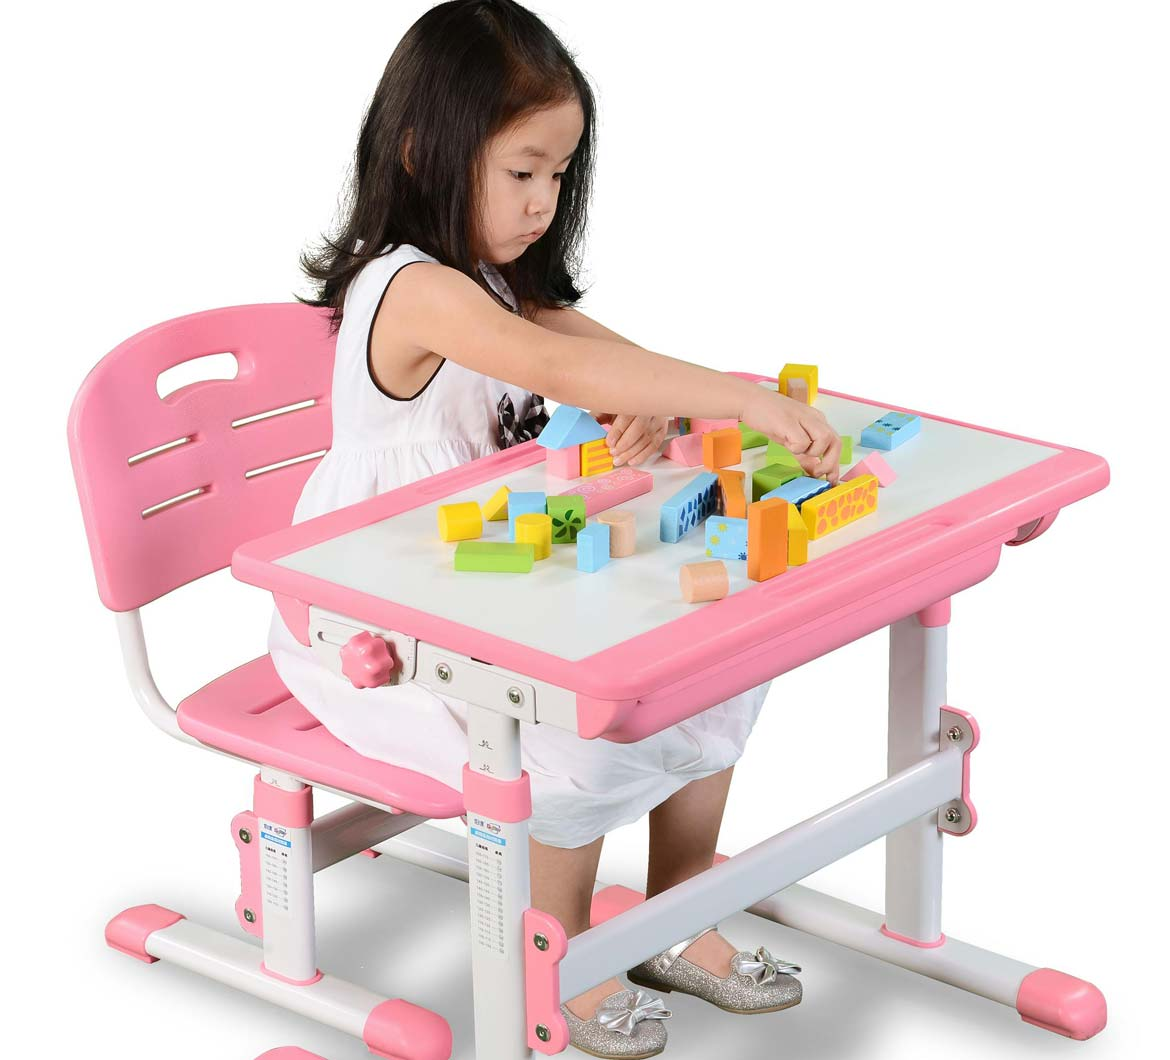 ergonomic-kids-table-adjustable-portfolio-midi-pink-desk-for-girls-2